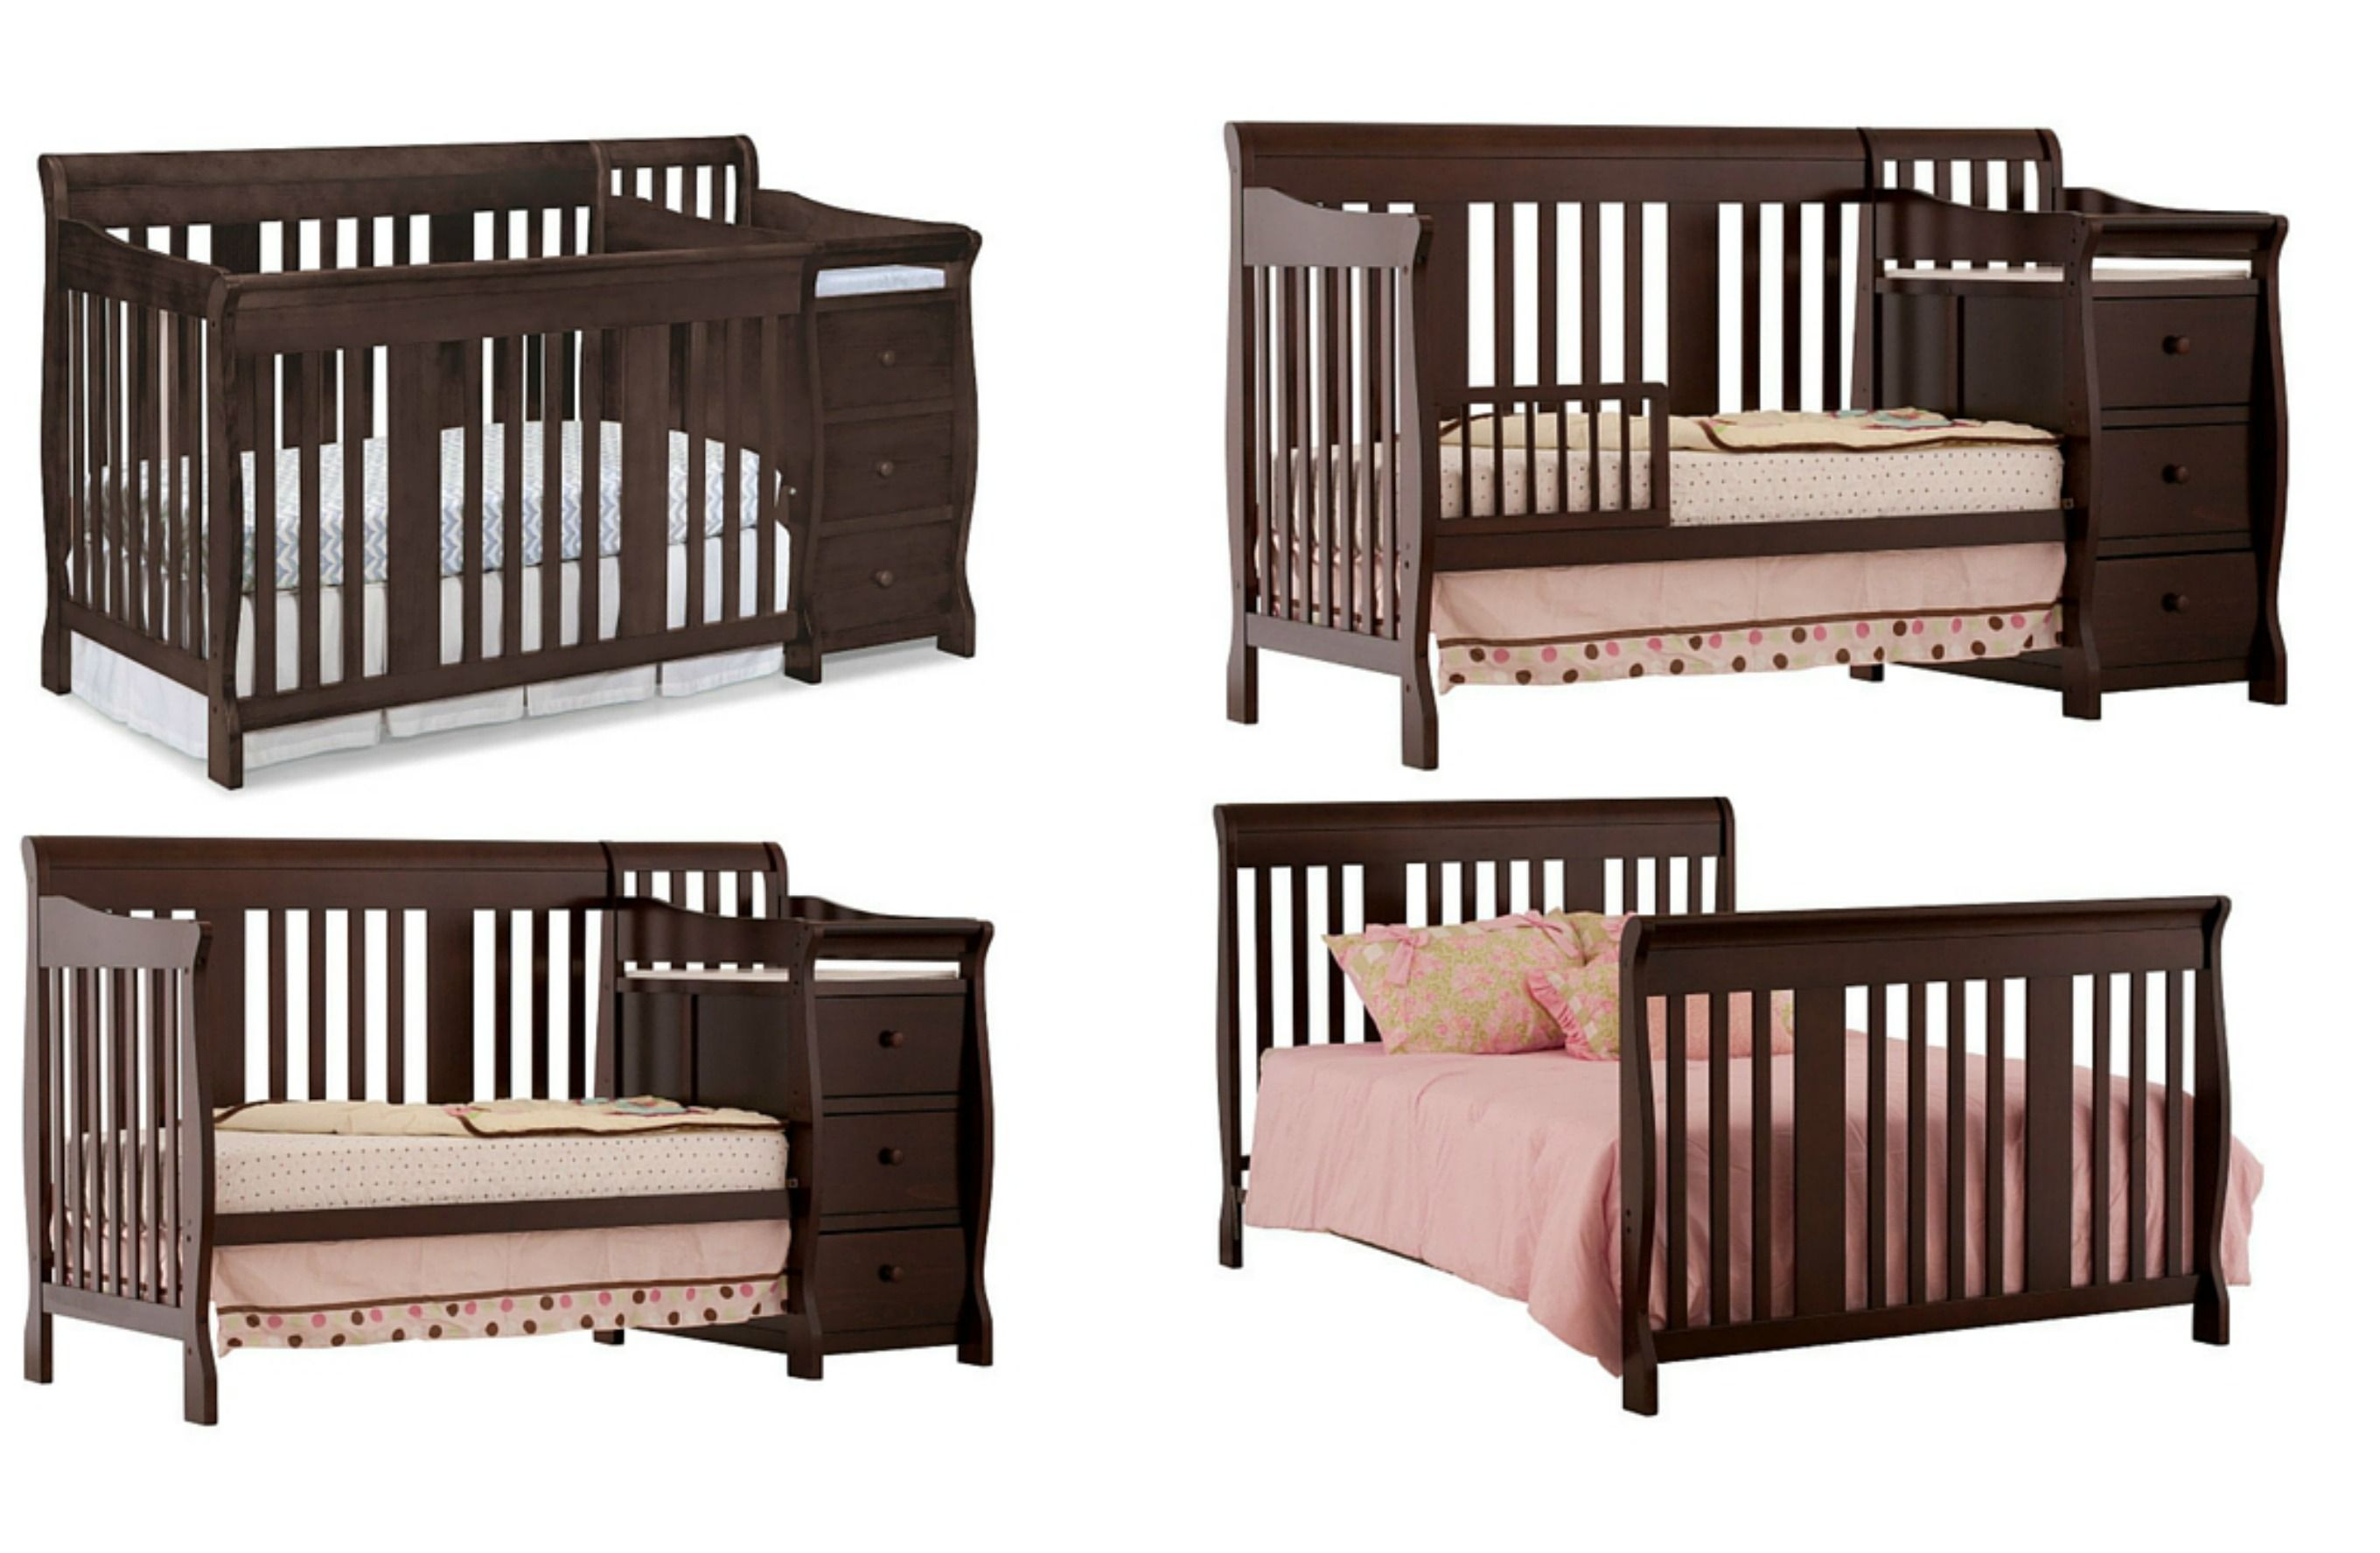 Our Top Baby Cribs Include The Stork Craft Portofino 4 In 1 Convertible Crib Why We Love It The Portofino 4 In 1 Convertible Cribs Best Baby Cribs Baby Cribs